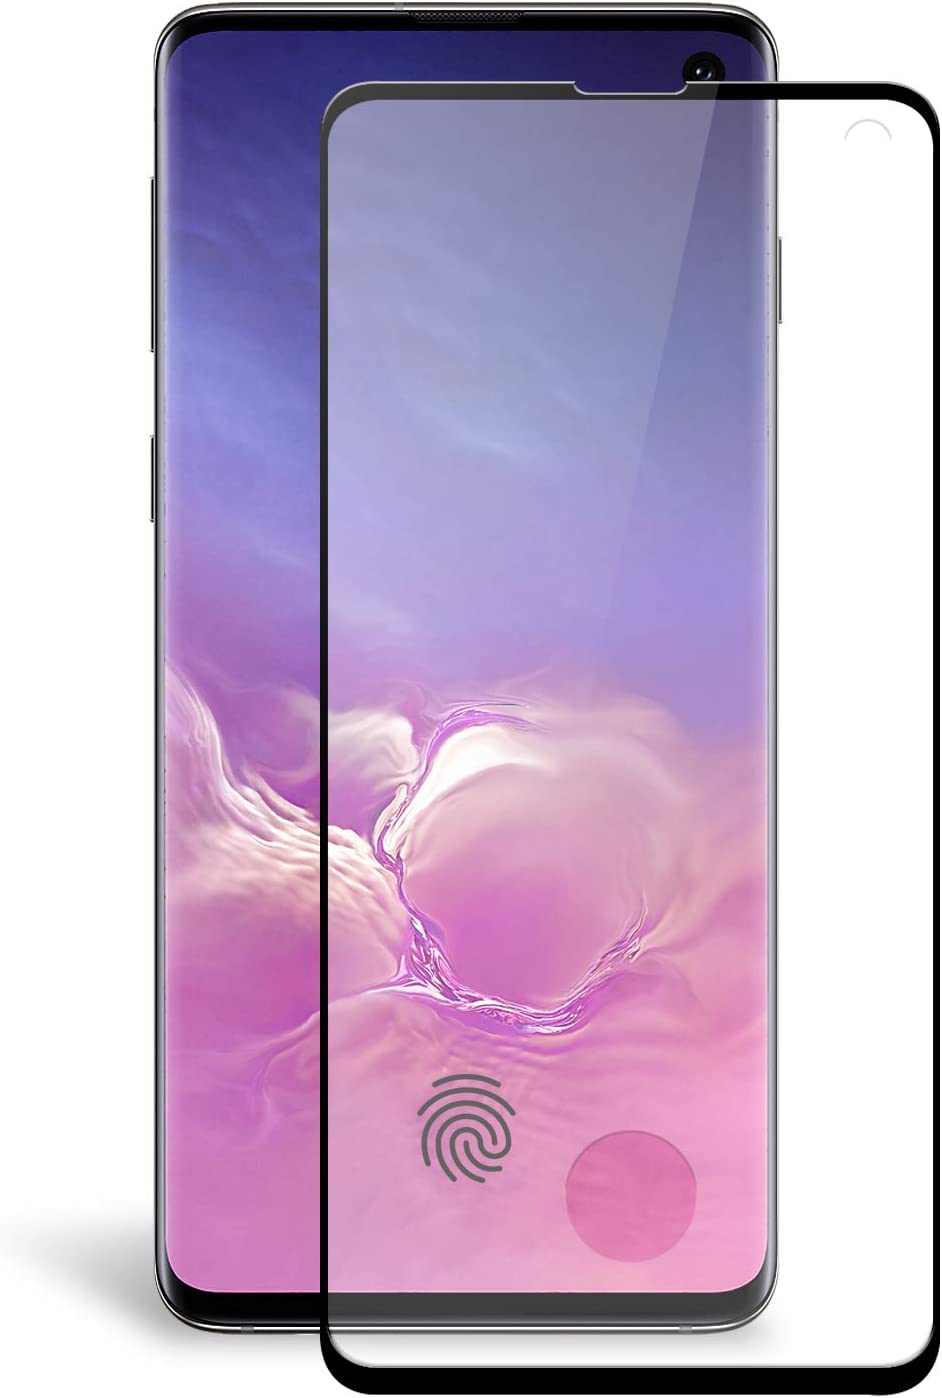 Olixar Screen Protector for Samsung Galaxy S10, Tempered Glass - Reliable Protection, Supports Device Features - Full Video Installation Guide